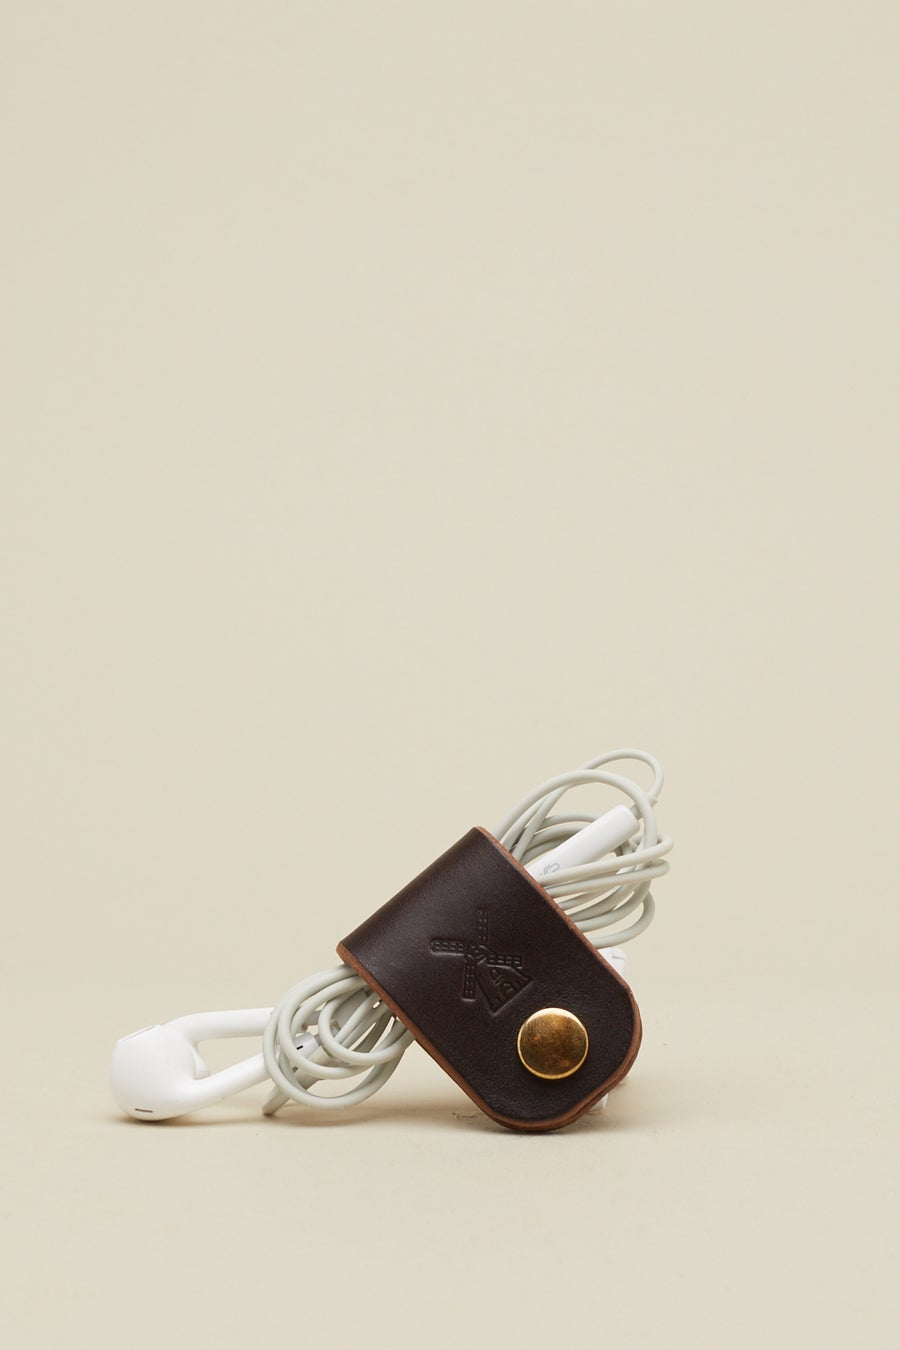 Image of Earphone Holder in Walnut